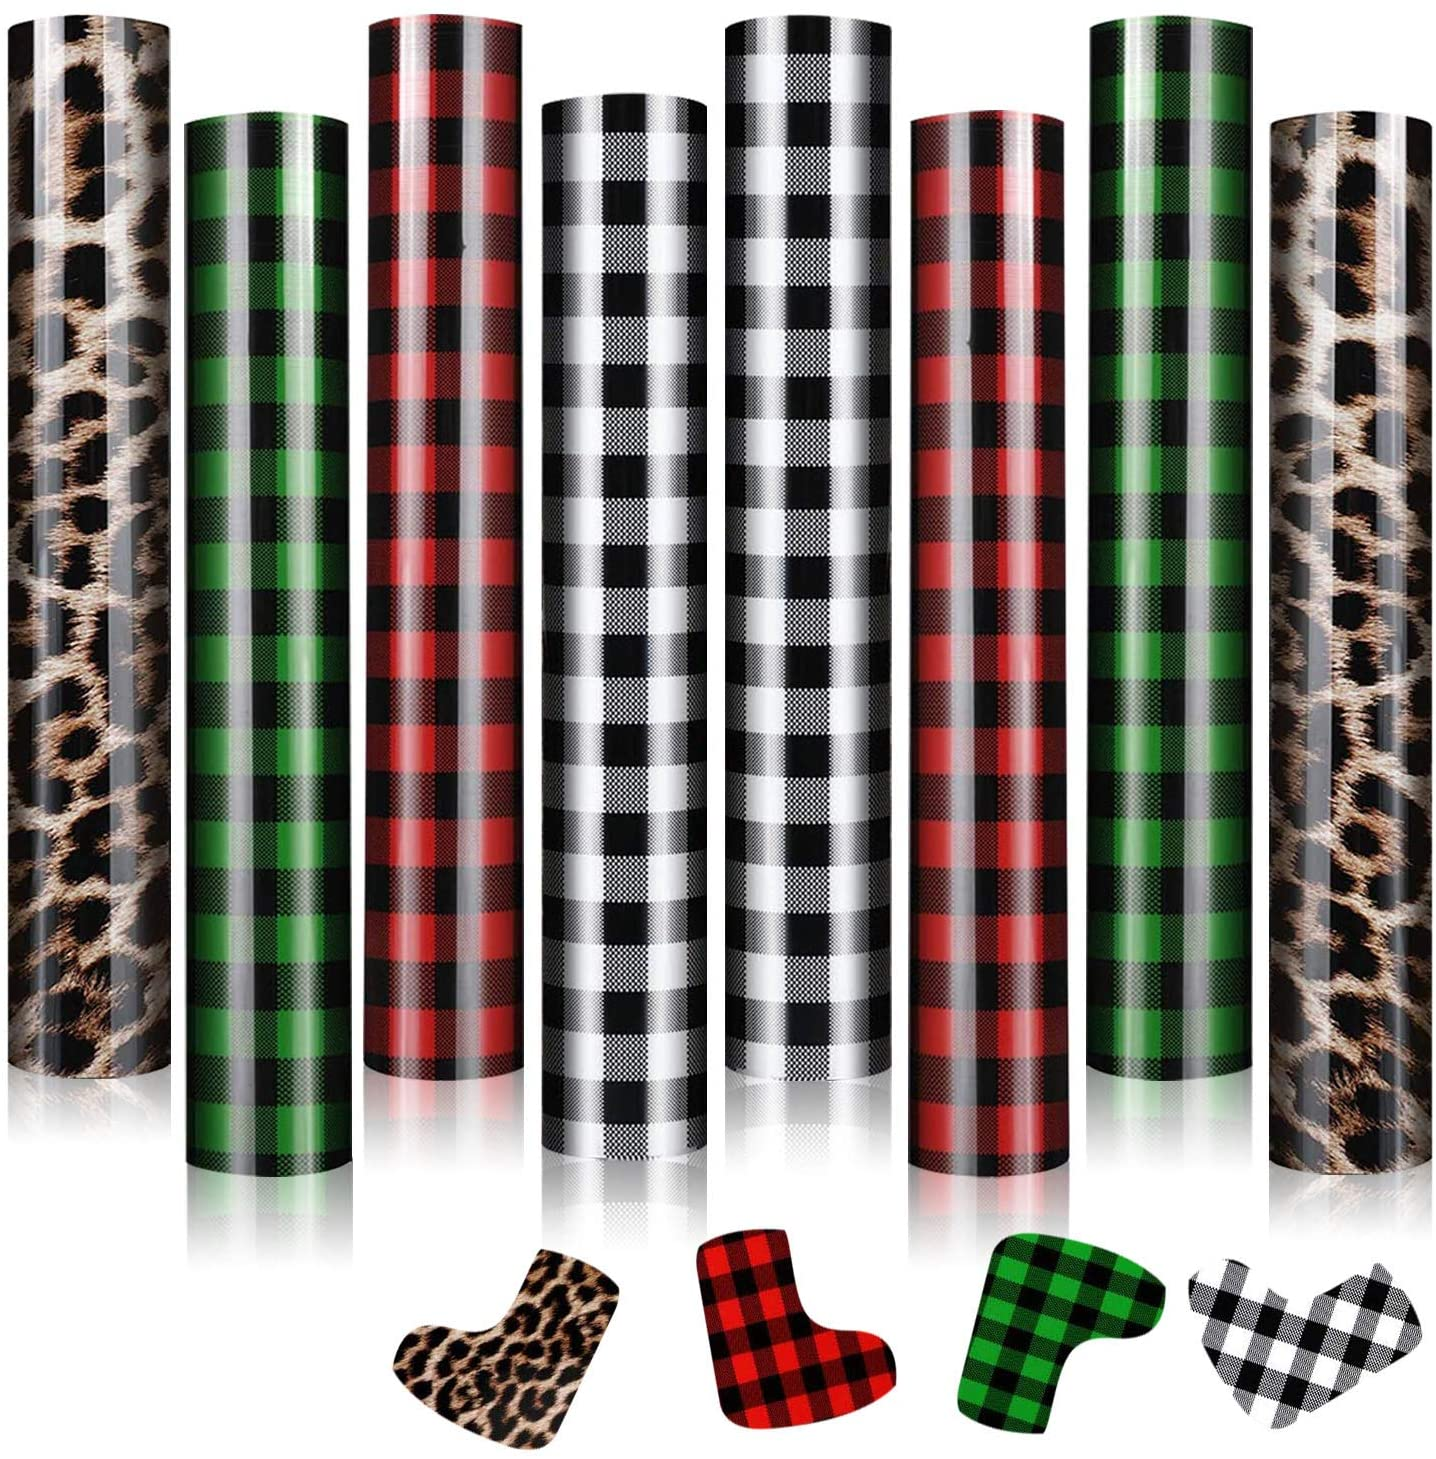 8 Sheets Christmas Buffalo Plaid Leopard Htv, Assorted Pattern Printed Htv Heat Transfer Vinyl, Iron On Transfers Vinyl for T-Shirts Fabric Craft (12 x 10 Inch, 4 Styles)